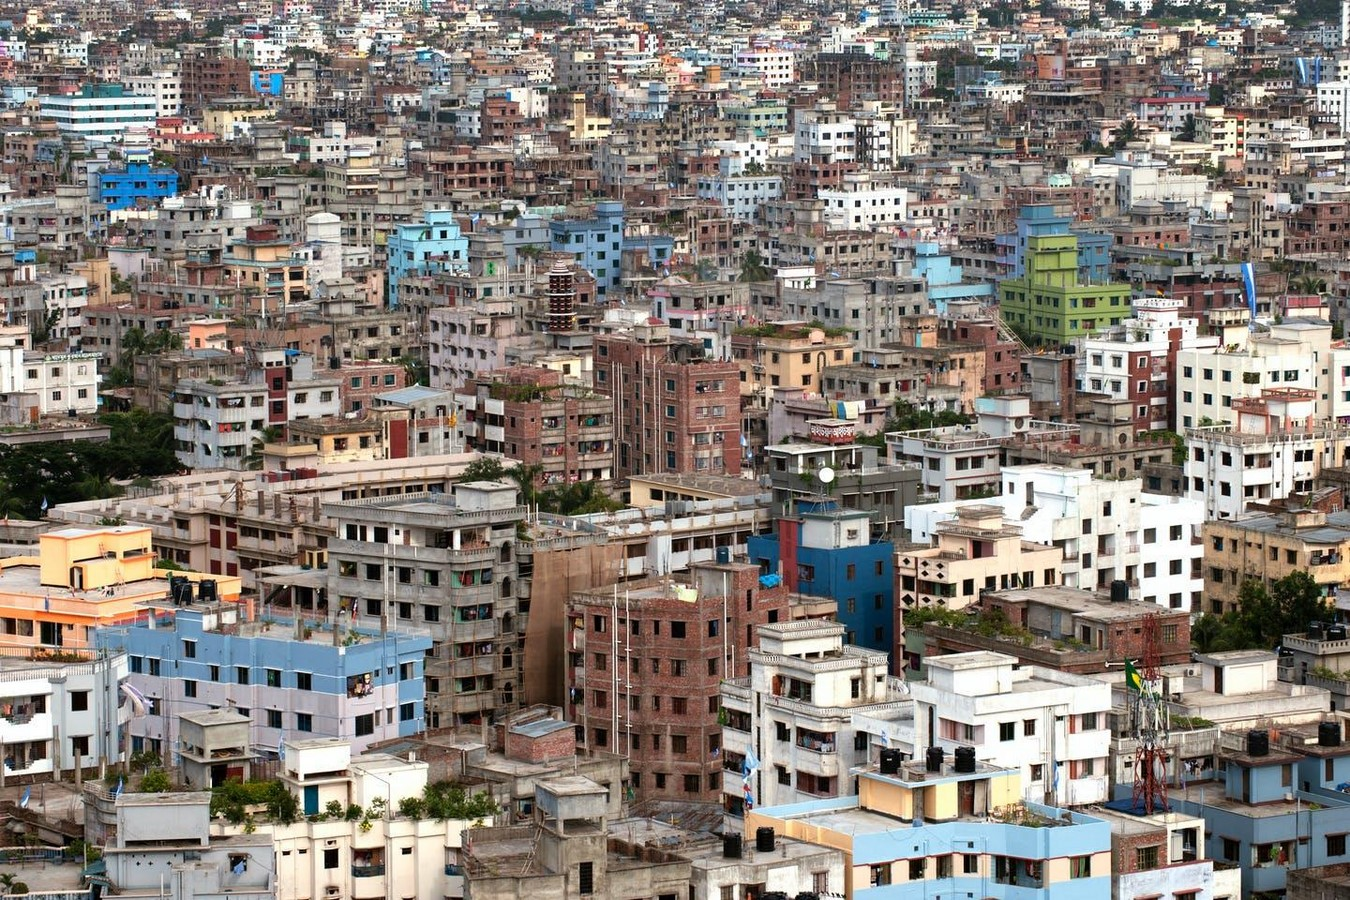 What is the difference between urbanization and urbanism? - Sheet3